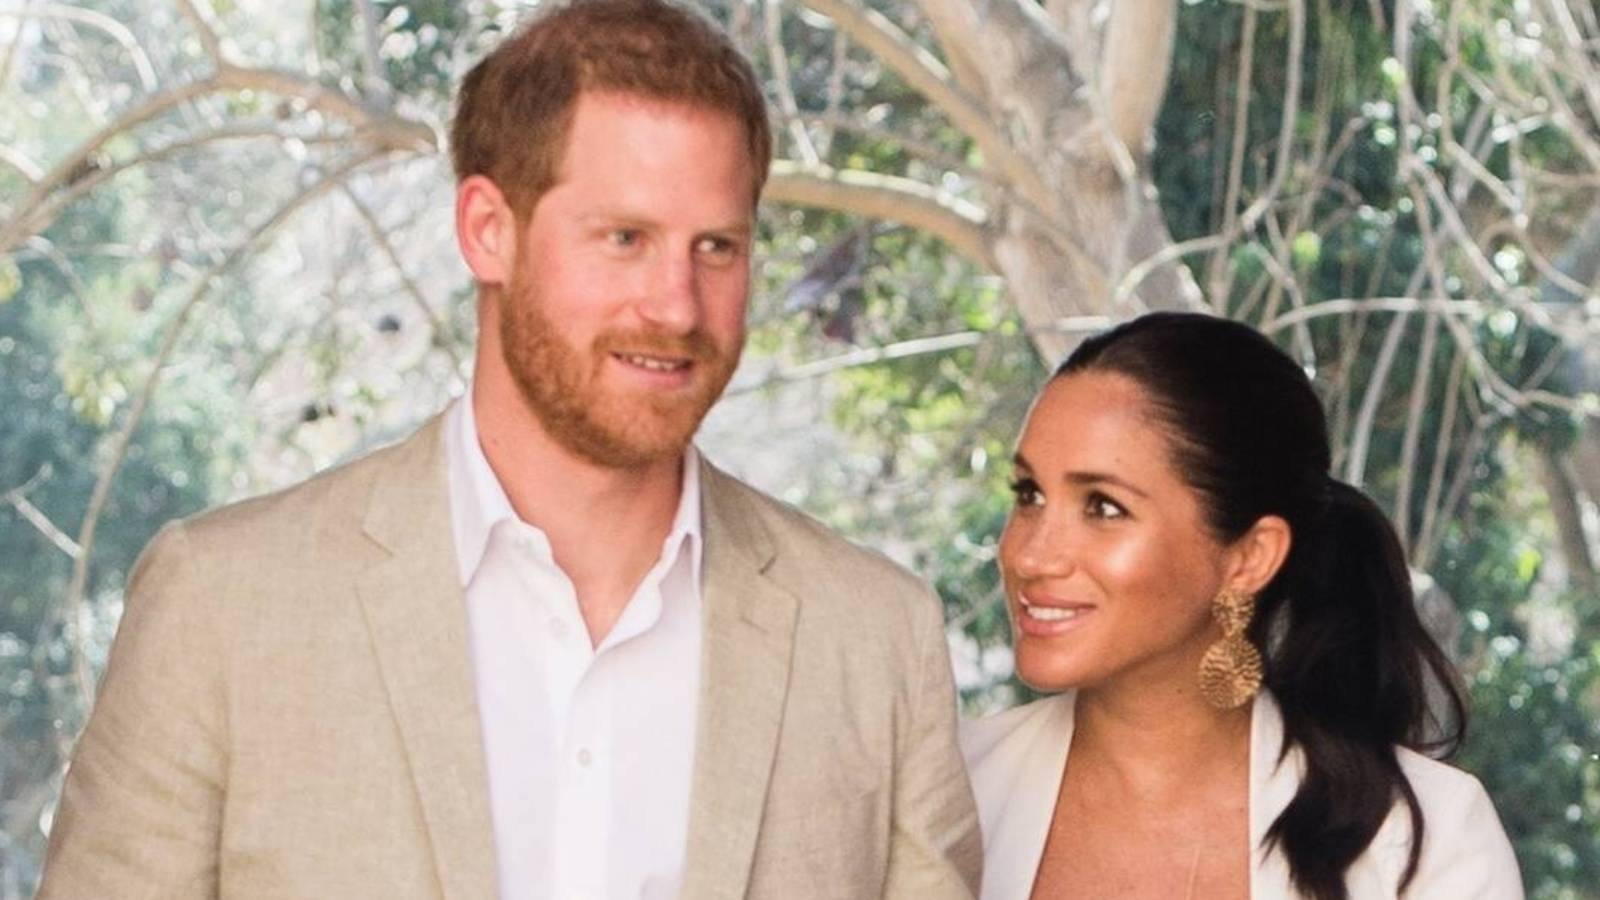 Meghan Markle and Prince Harry's royal feud is centre stage in new movie trailer